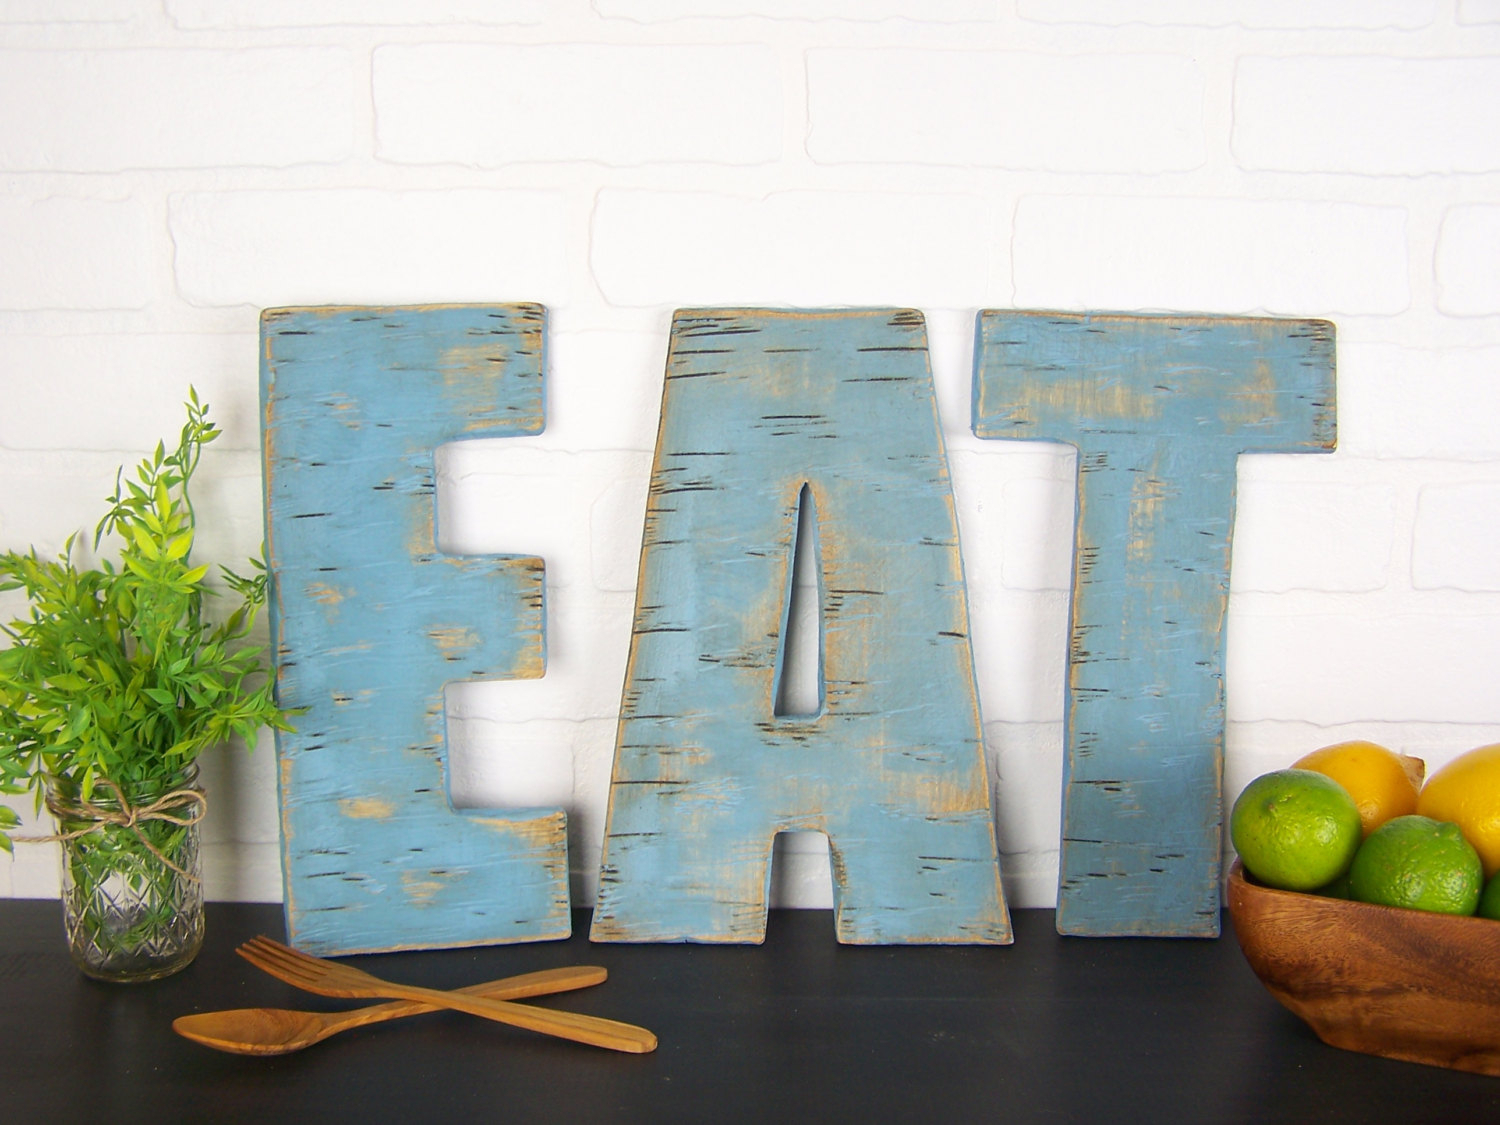 Rustic Eat Sign Wooden Letters Kitchen Farmhouse Signs Regarding Eat Rustic Farmhouse Wood Wall Decor (Photo 11 of 30)